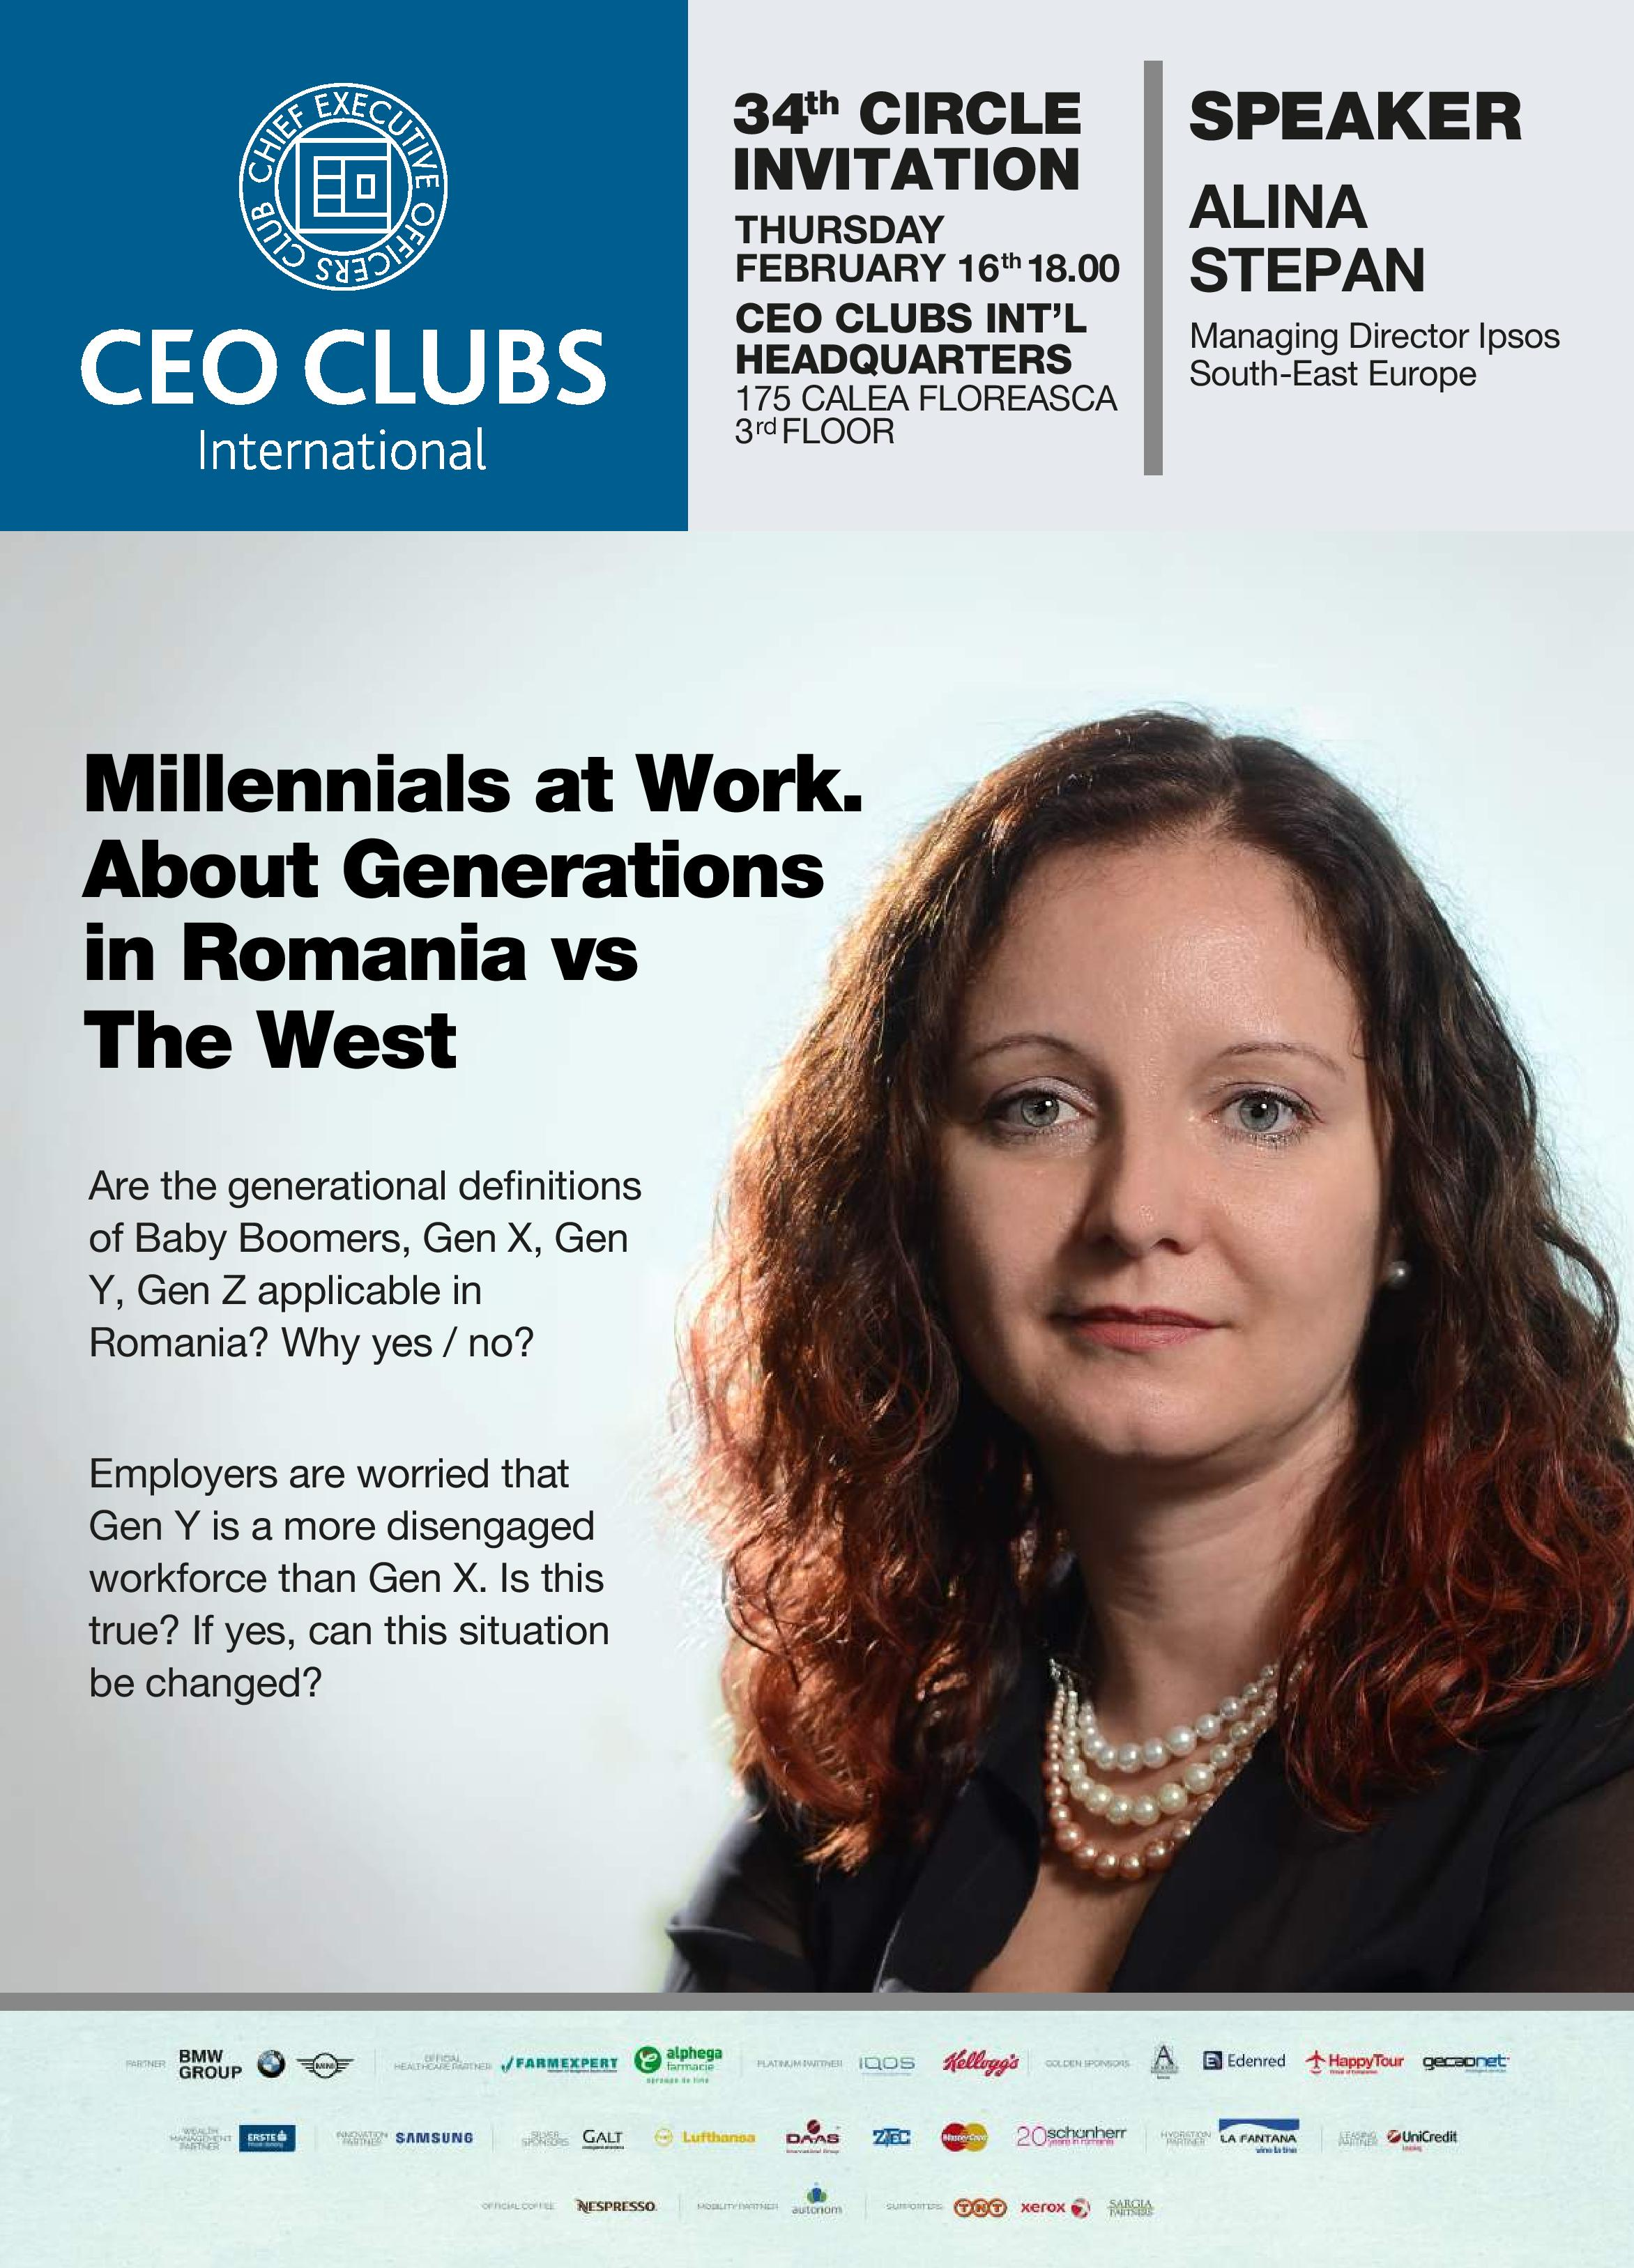 The 34th Circle: Millennials at Work